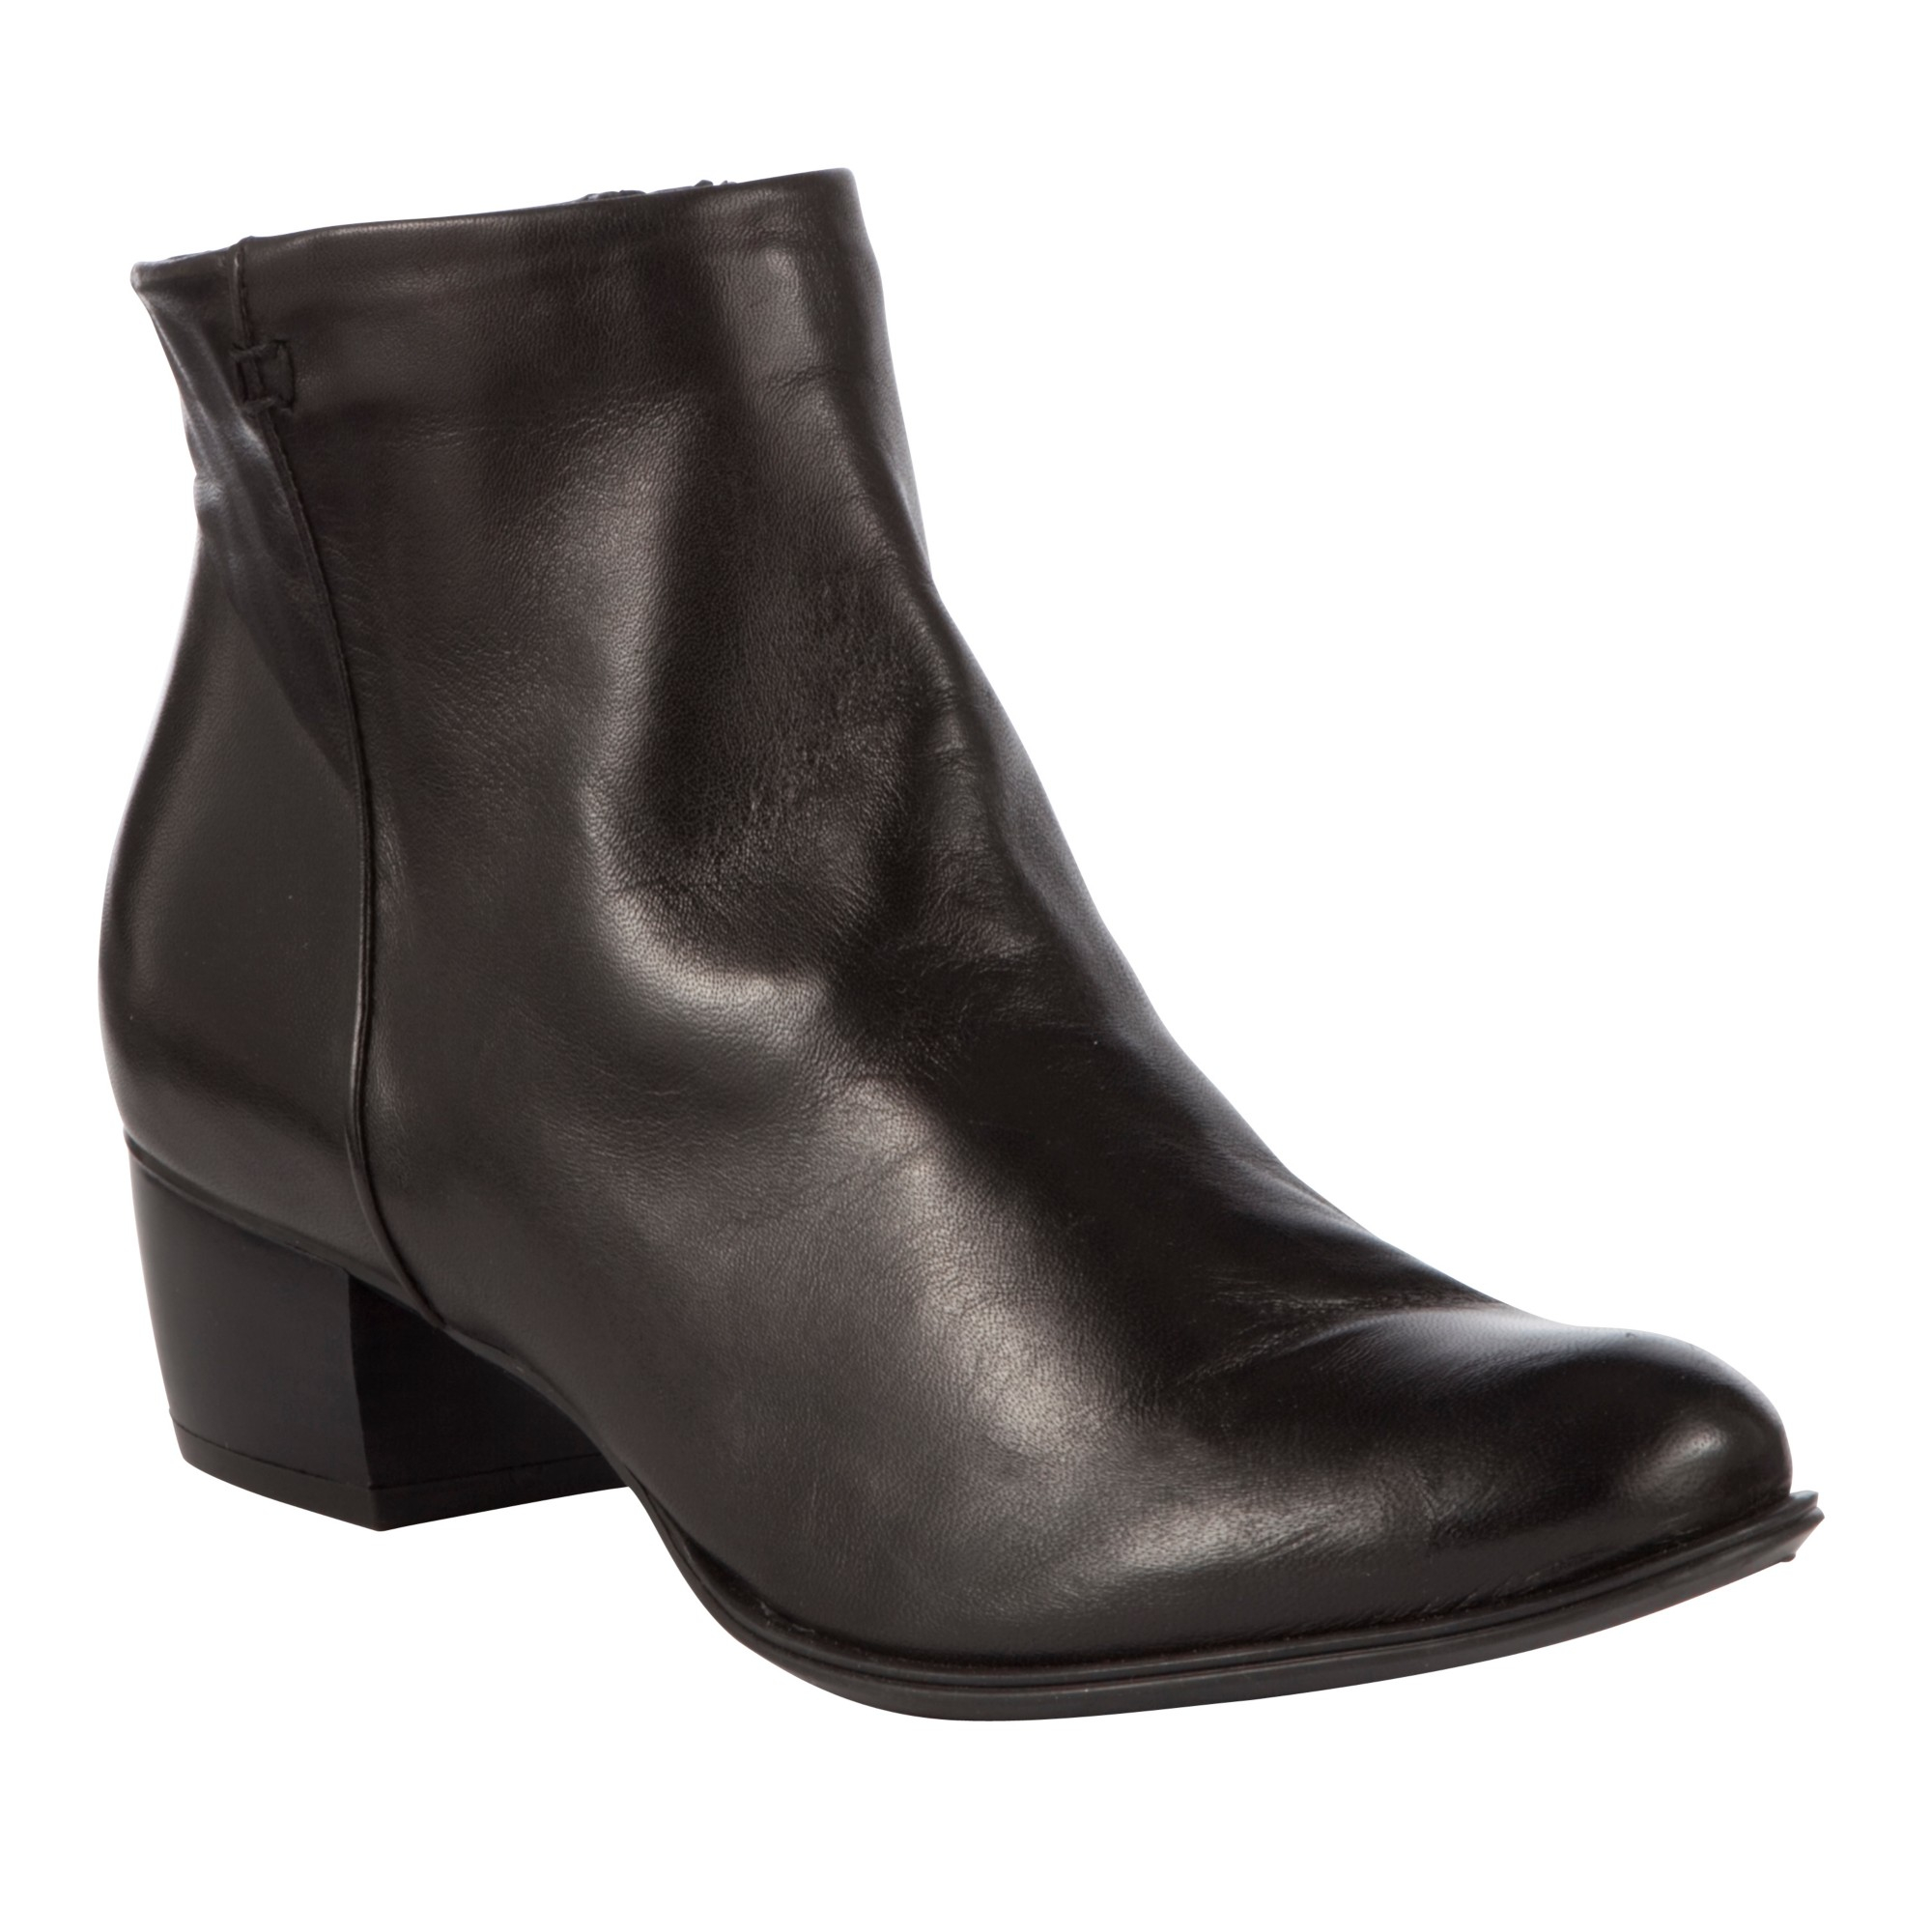 John Lewis Albany Leather Ankle Boots in Black